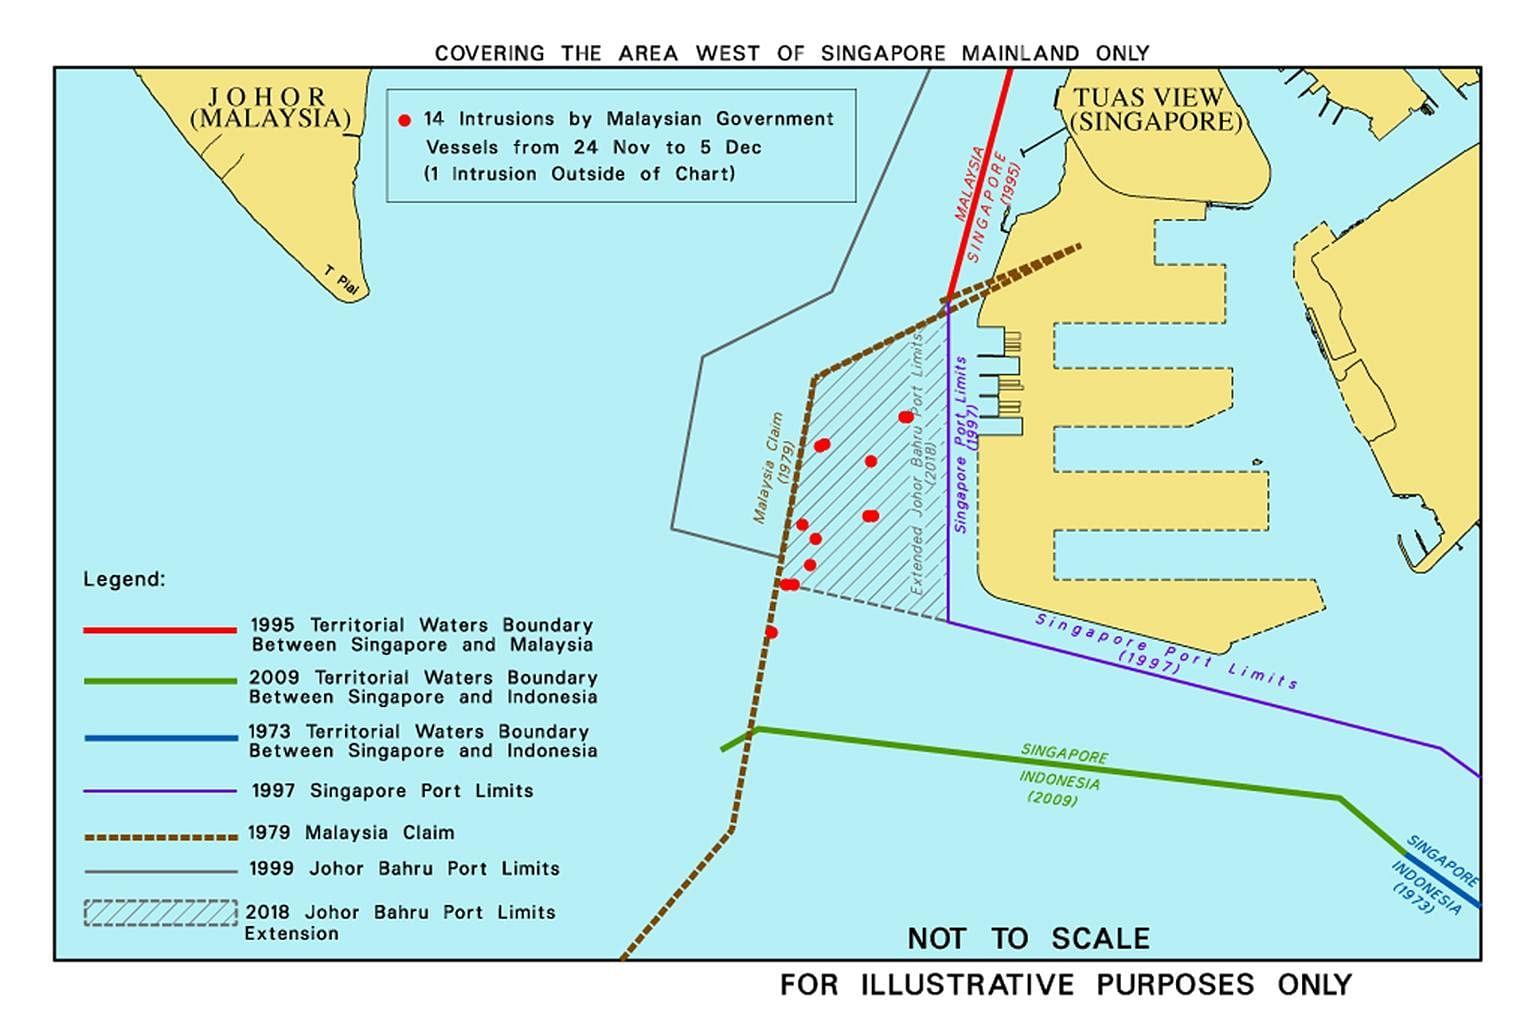 Changes in port limits and claims over the years, Singapore ... on myanmar on a map, samoan islands on a map, guangxi on a map, nepal on a map, singapore on a map, the sudan on a map, santa domingo on a map, southern india on a map, waziristan on a map, east timor on a map, heard island on a map, syria on a map, st john island on a map, world map, siam on a map, bangladesh on a map, sri lanka on a map, the seychelles on a map, kabul river on a map, dr congo on a map,